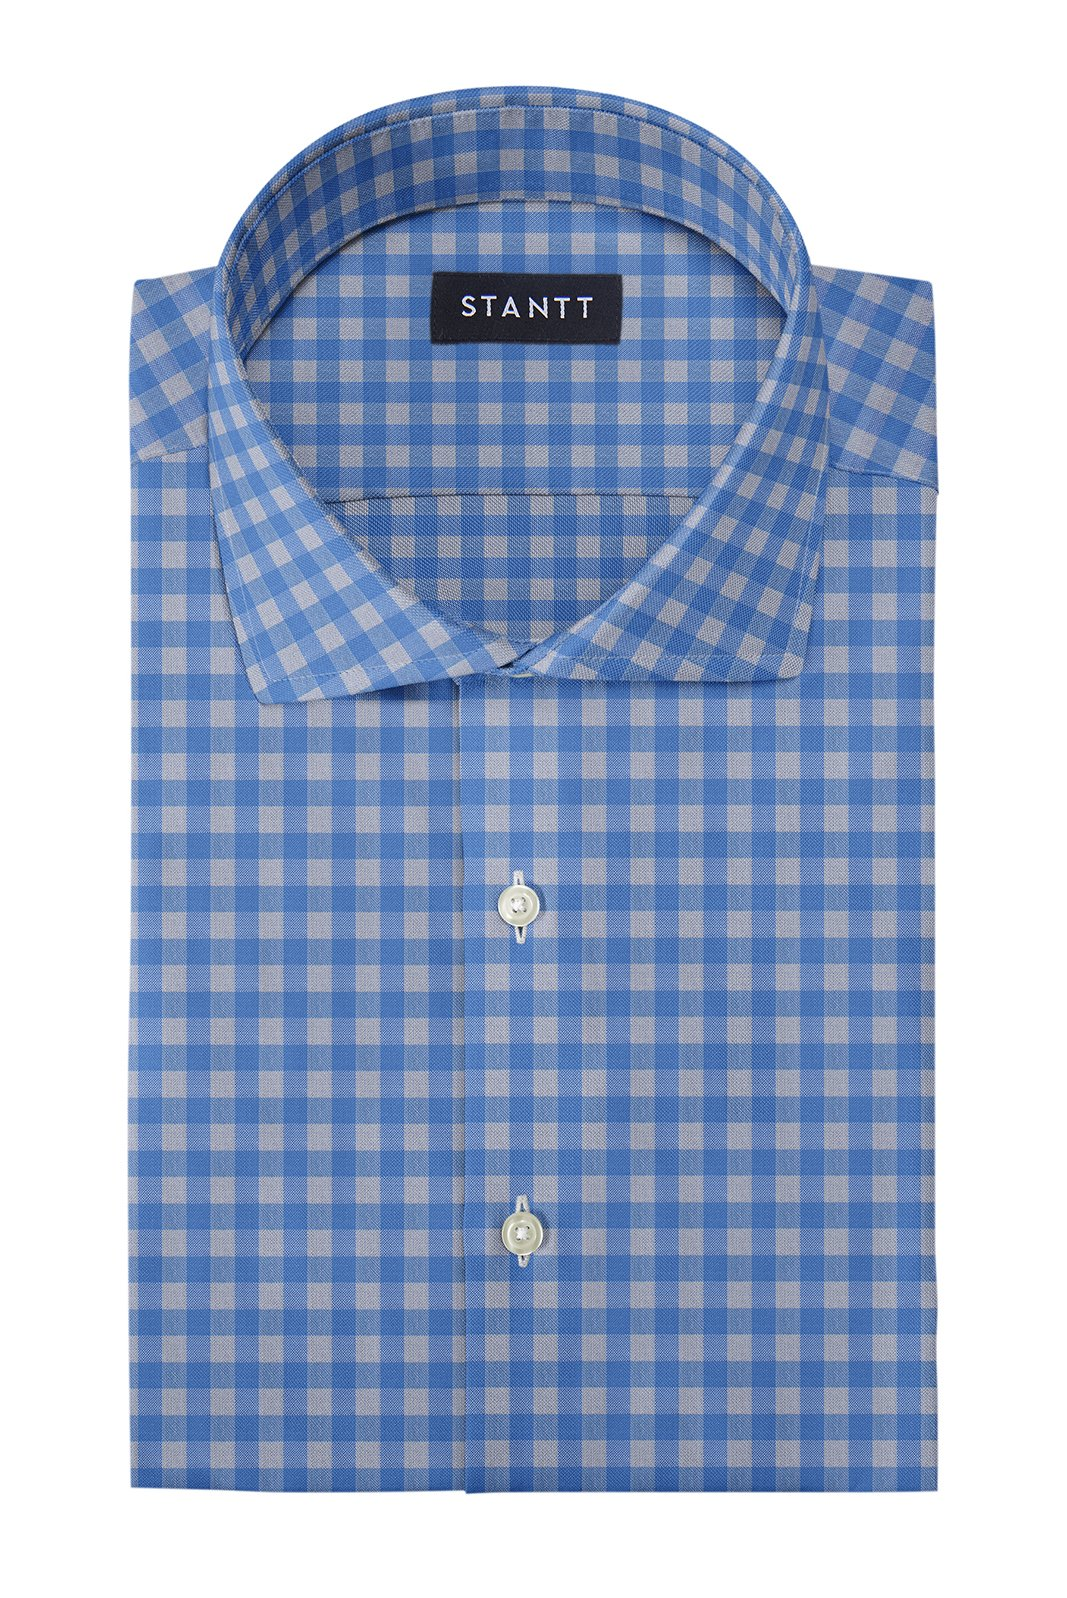 Blue and Grey Gingham: Cutaway Collar, French Cuff